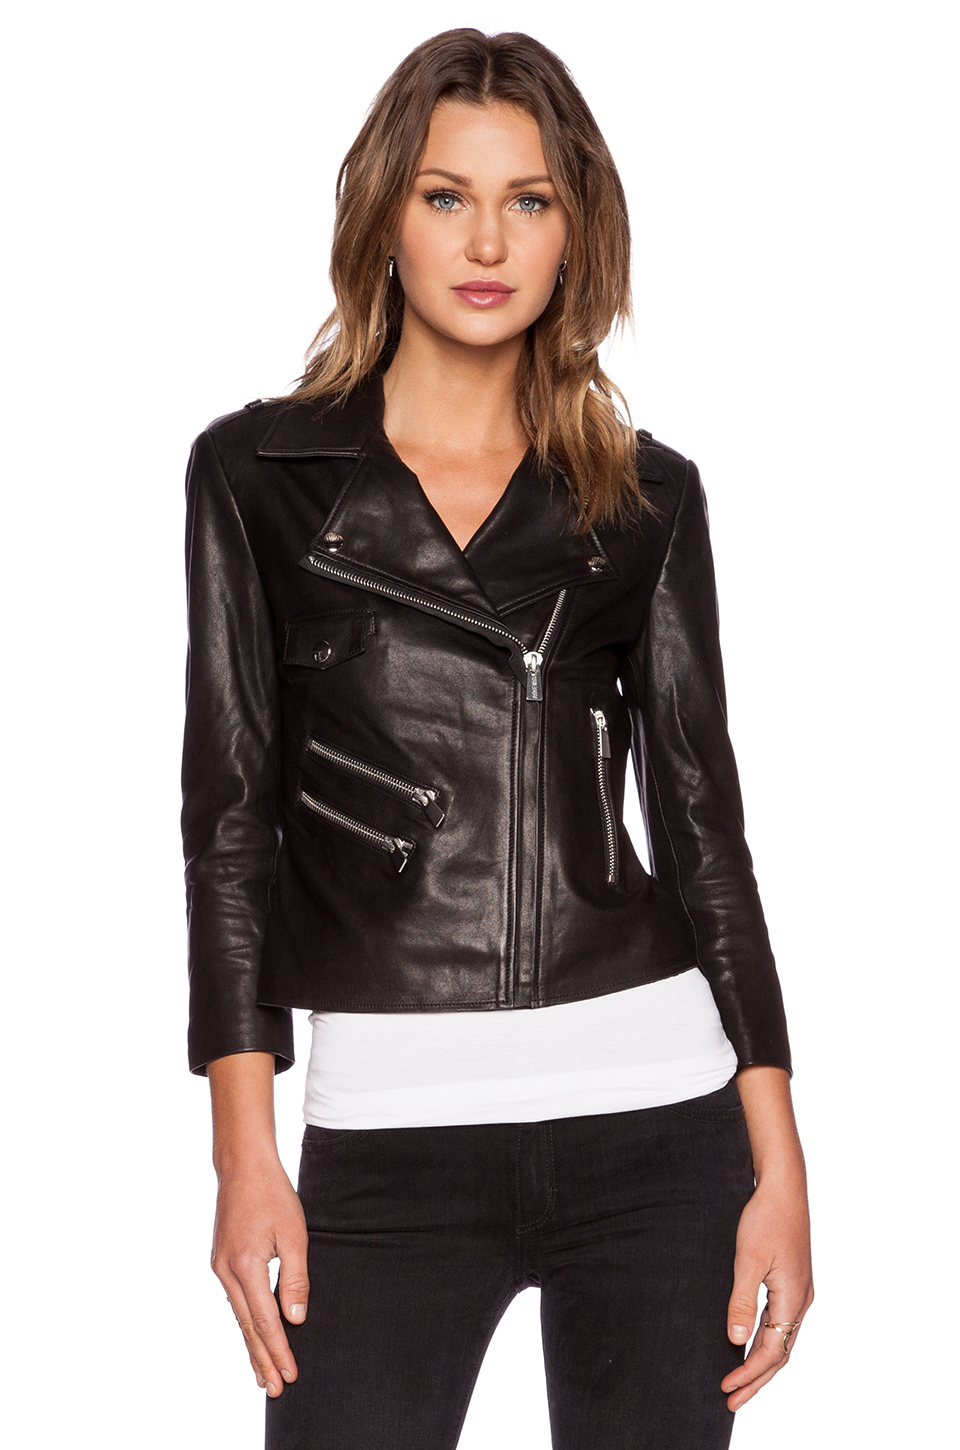 Anine bing Cropped Leather Jacket in Black | Lyst